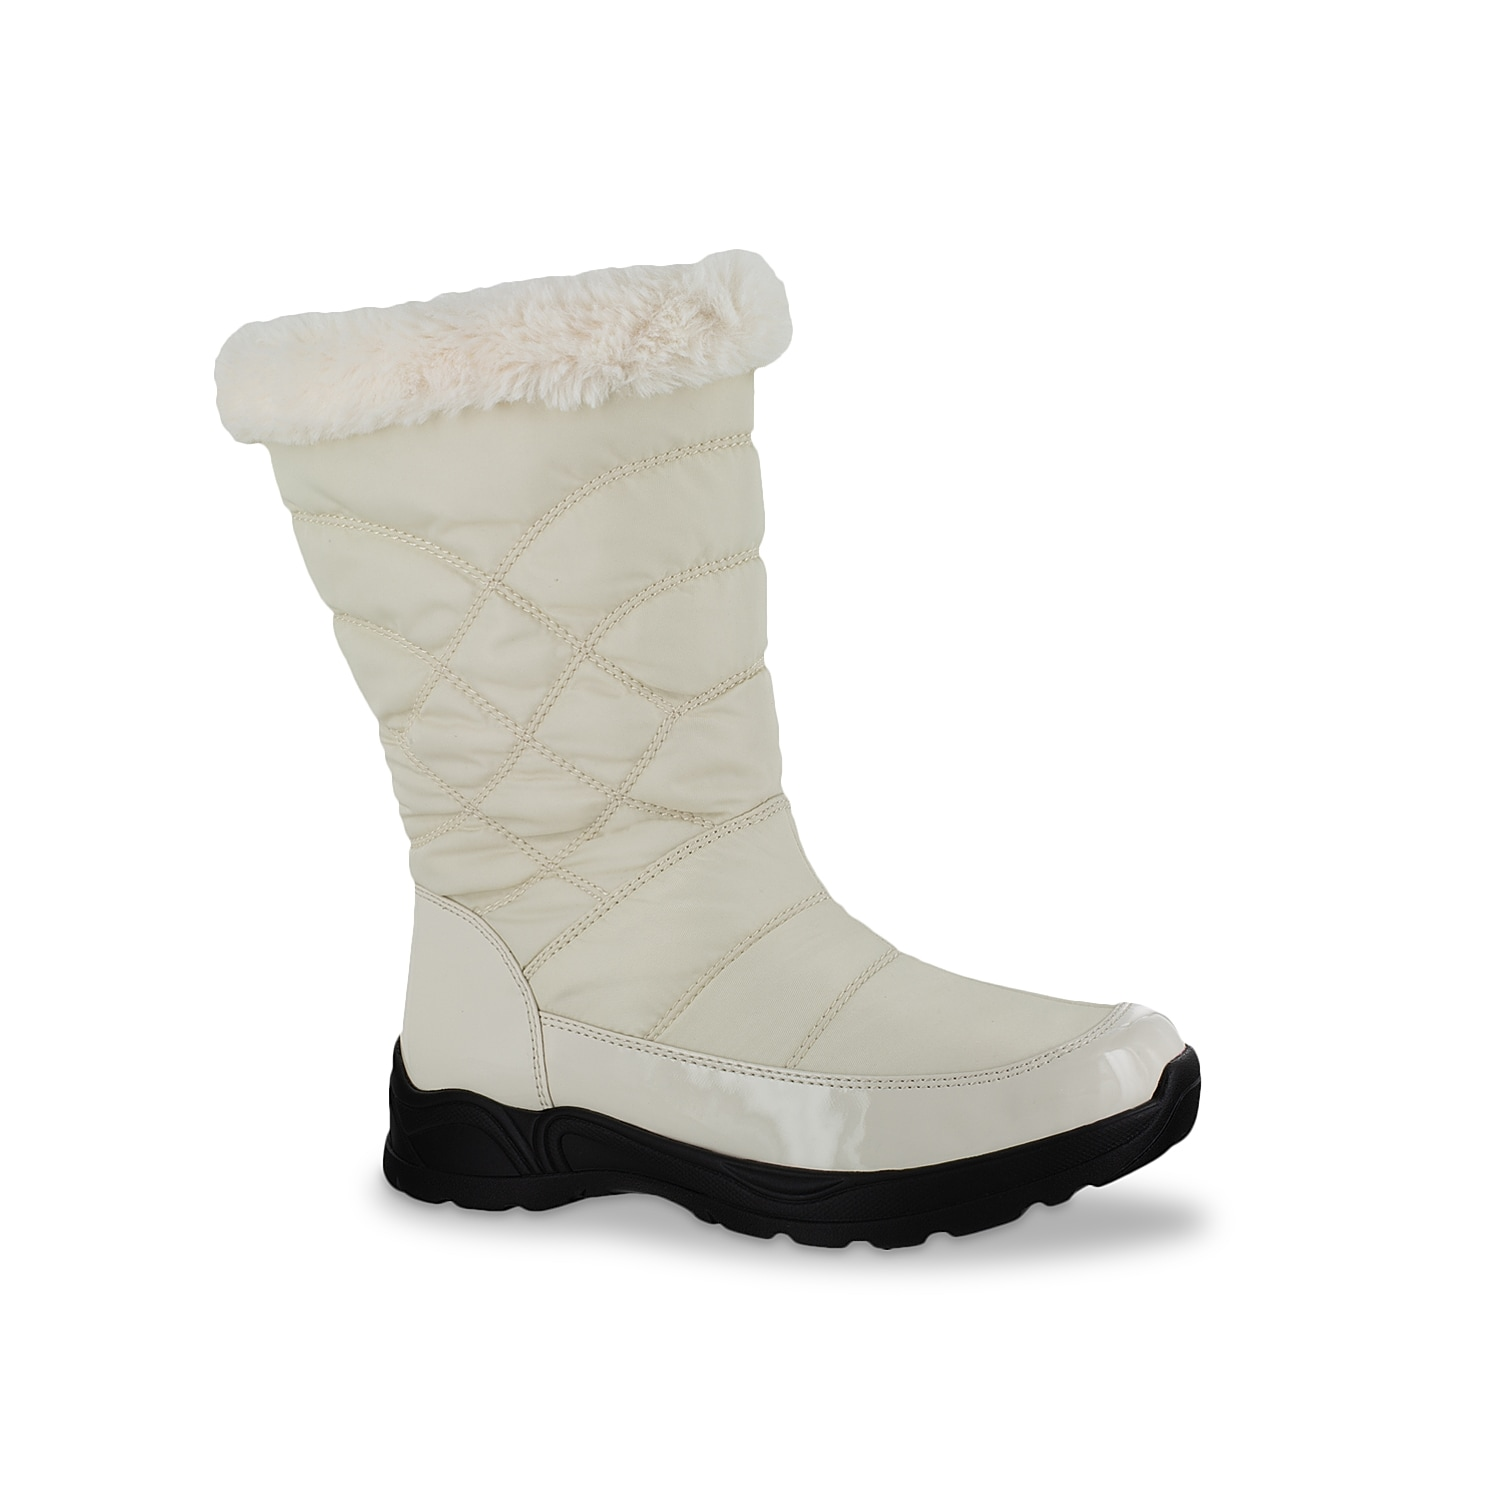 Combat the inclement weather in the Cuddle Easy Dry boot from Easy Street. It showcases quilted shaft, faux fur topline, waterproof inner shell and Easy Dry technology that keep your foot dry and warm.Click here for Boot Measuring Guide.